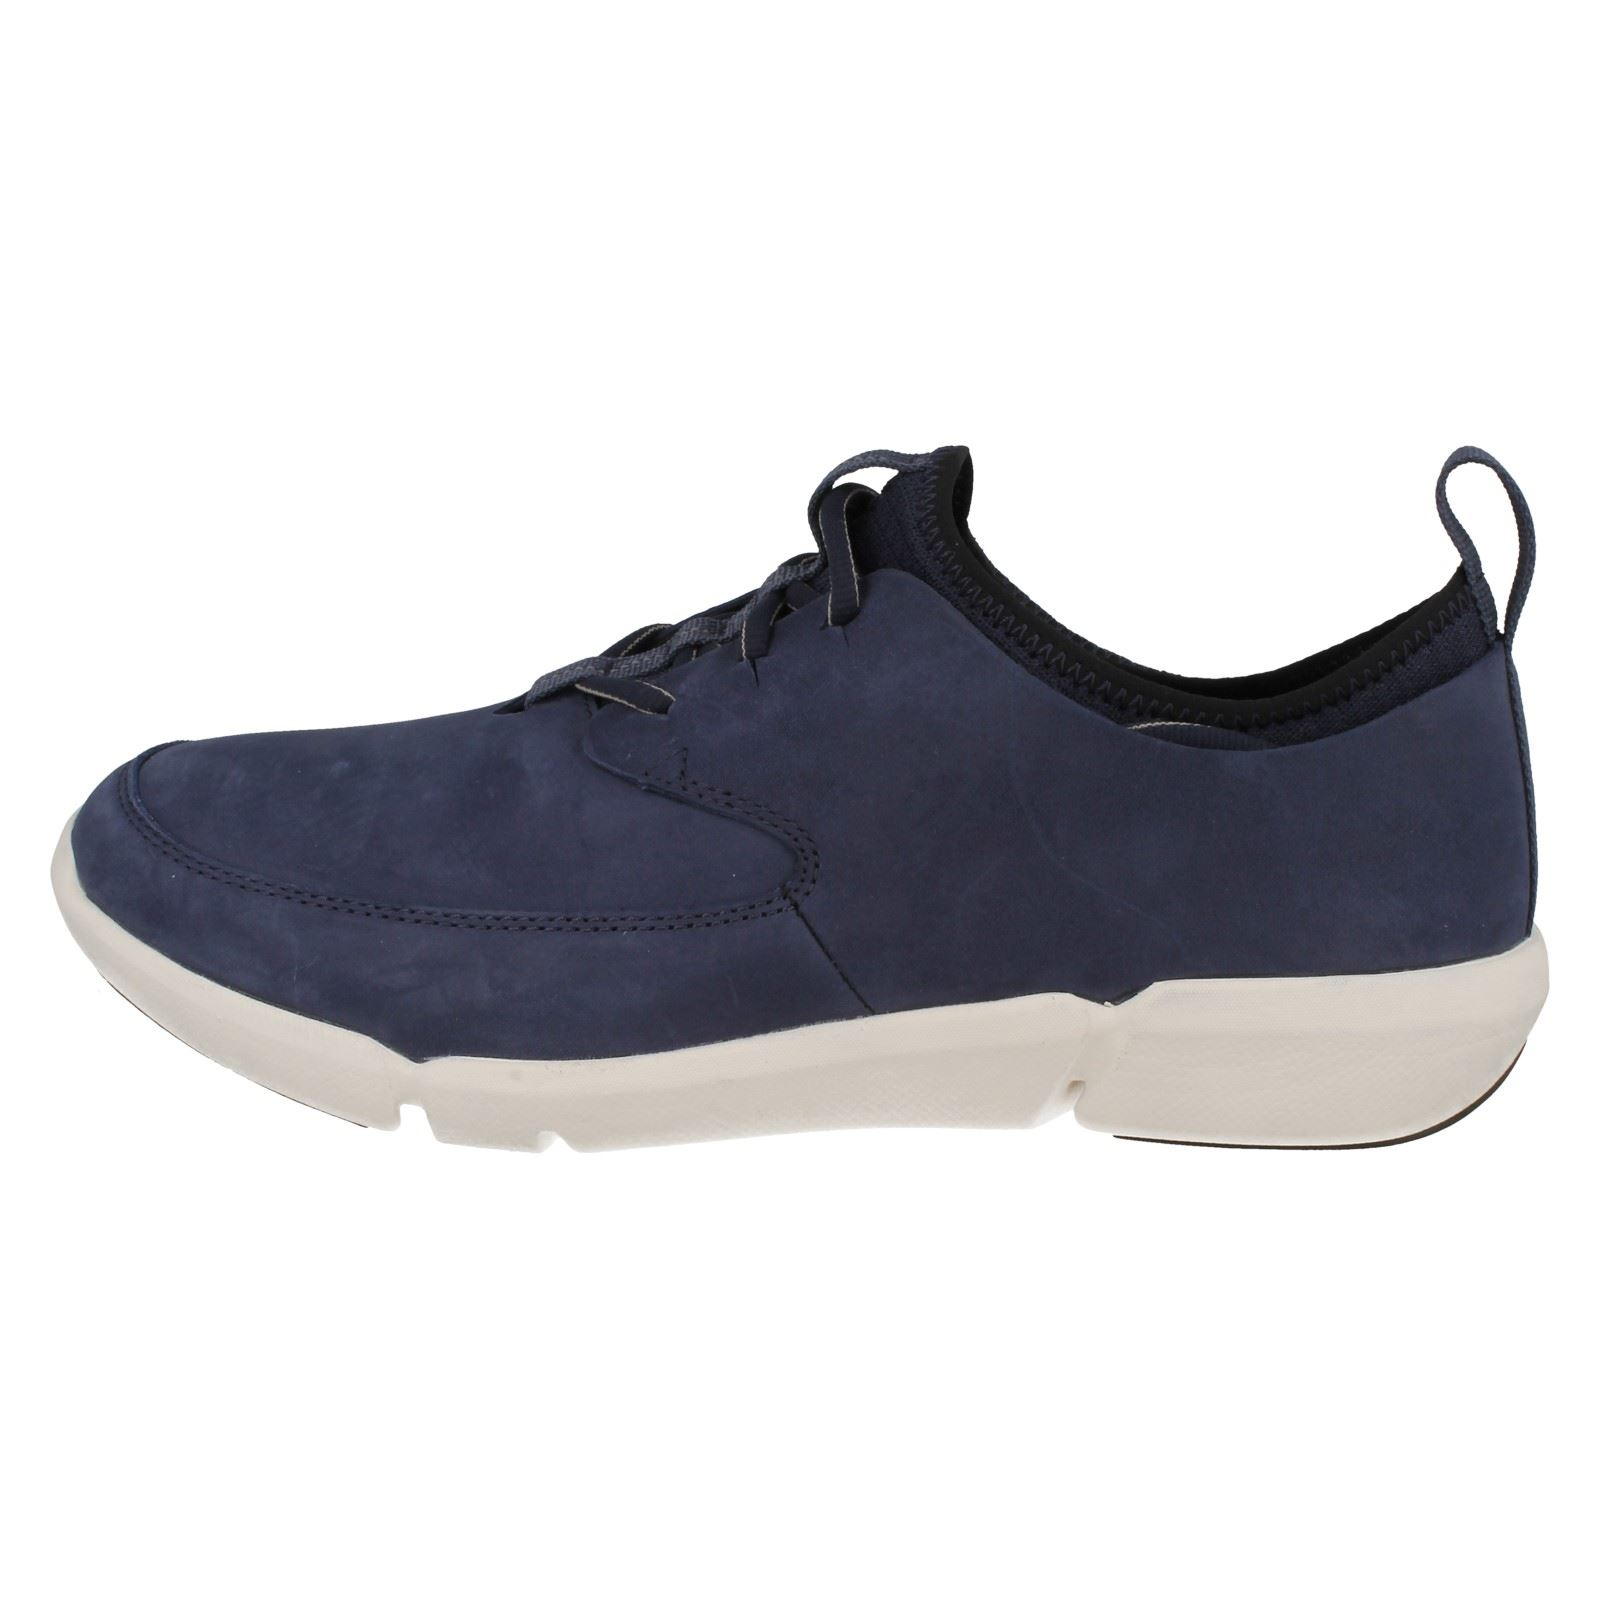 Mens Clarks Lace Up Casual Shoes 'Triflow Form'